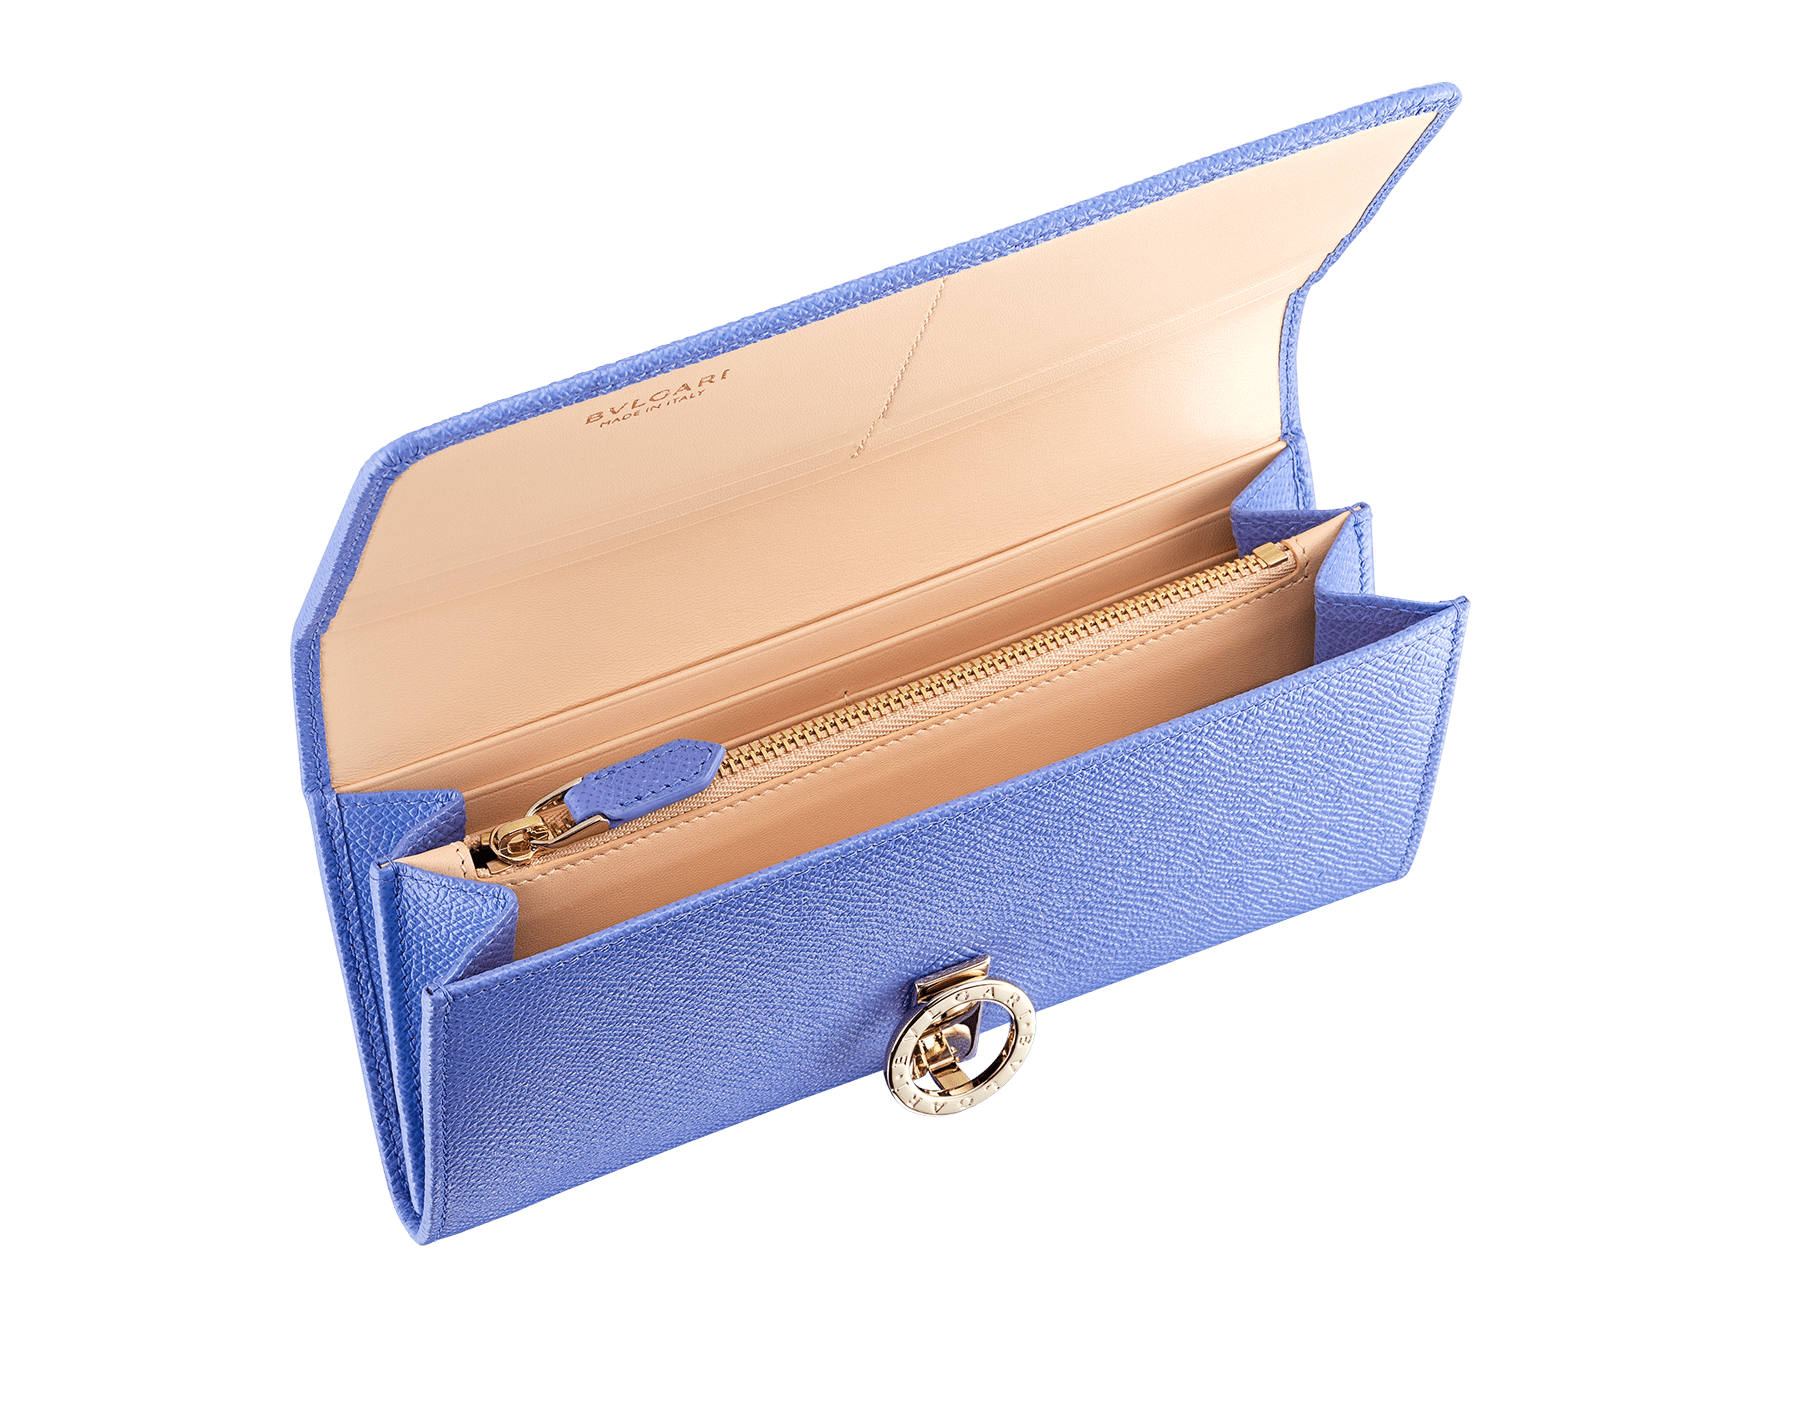 """""""BVLGARI BVLGARI"""" large wallet in Lavender Amethyst bright lilac grained calf leather and peach nappa leather. Iconic logo clip closure in light gold-plated brass. 579-WLT-SLI-POC-CLd image 2"""